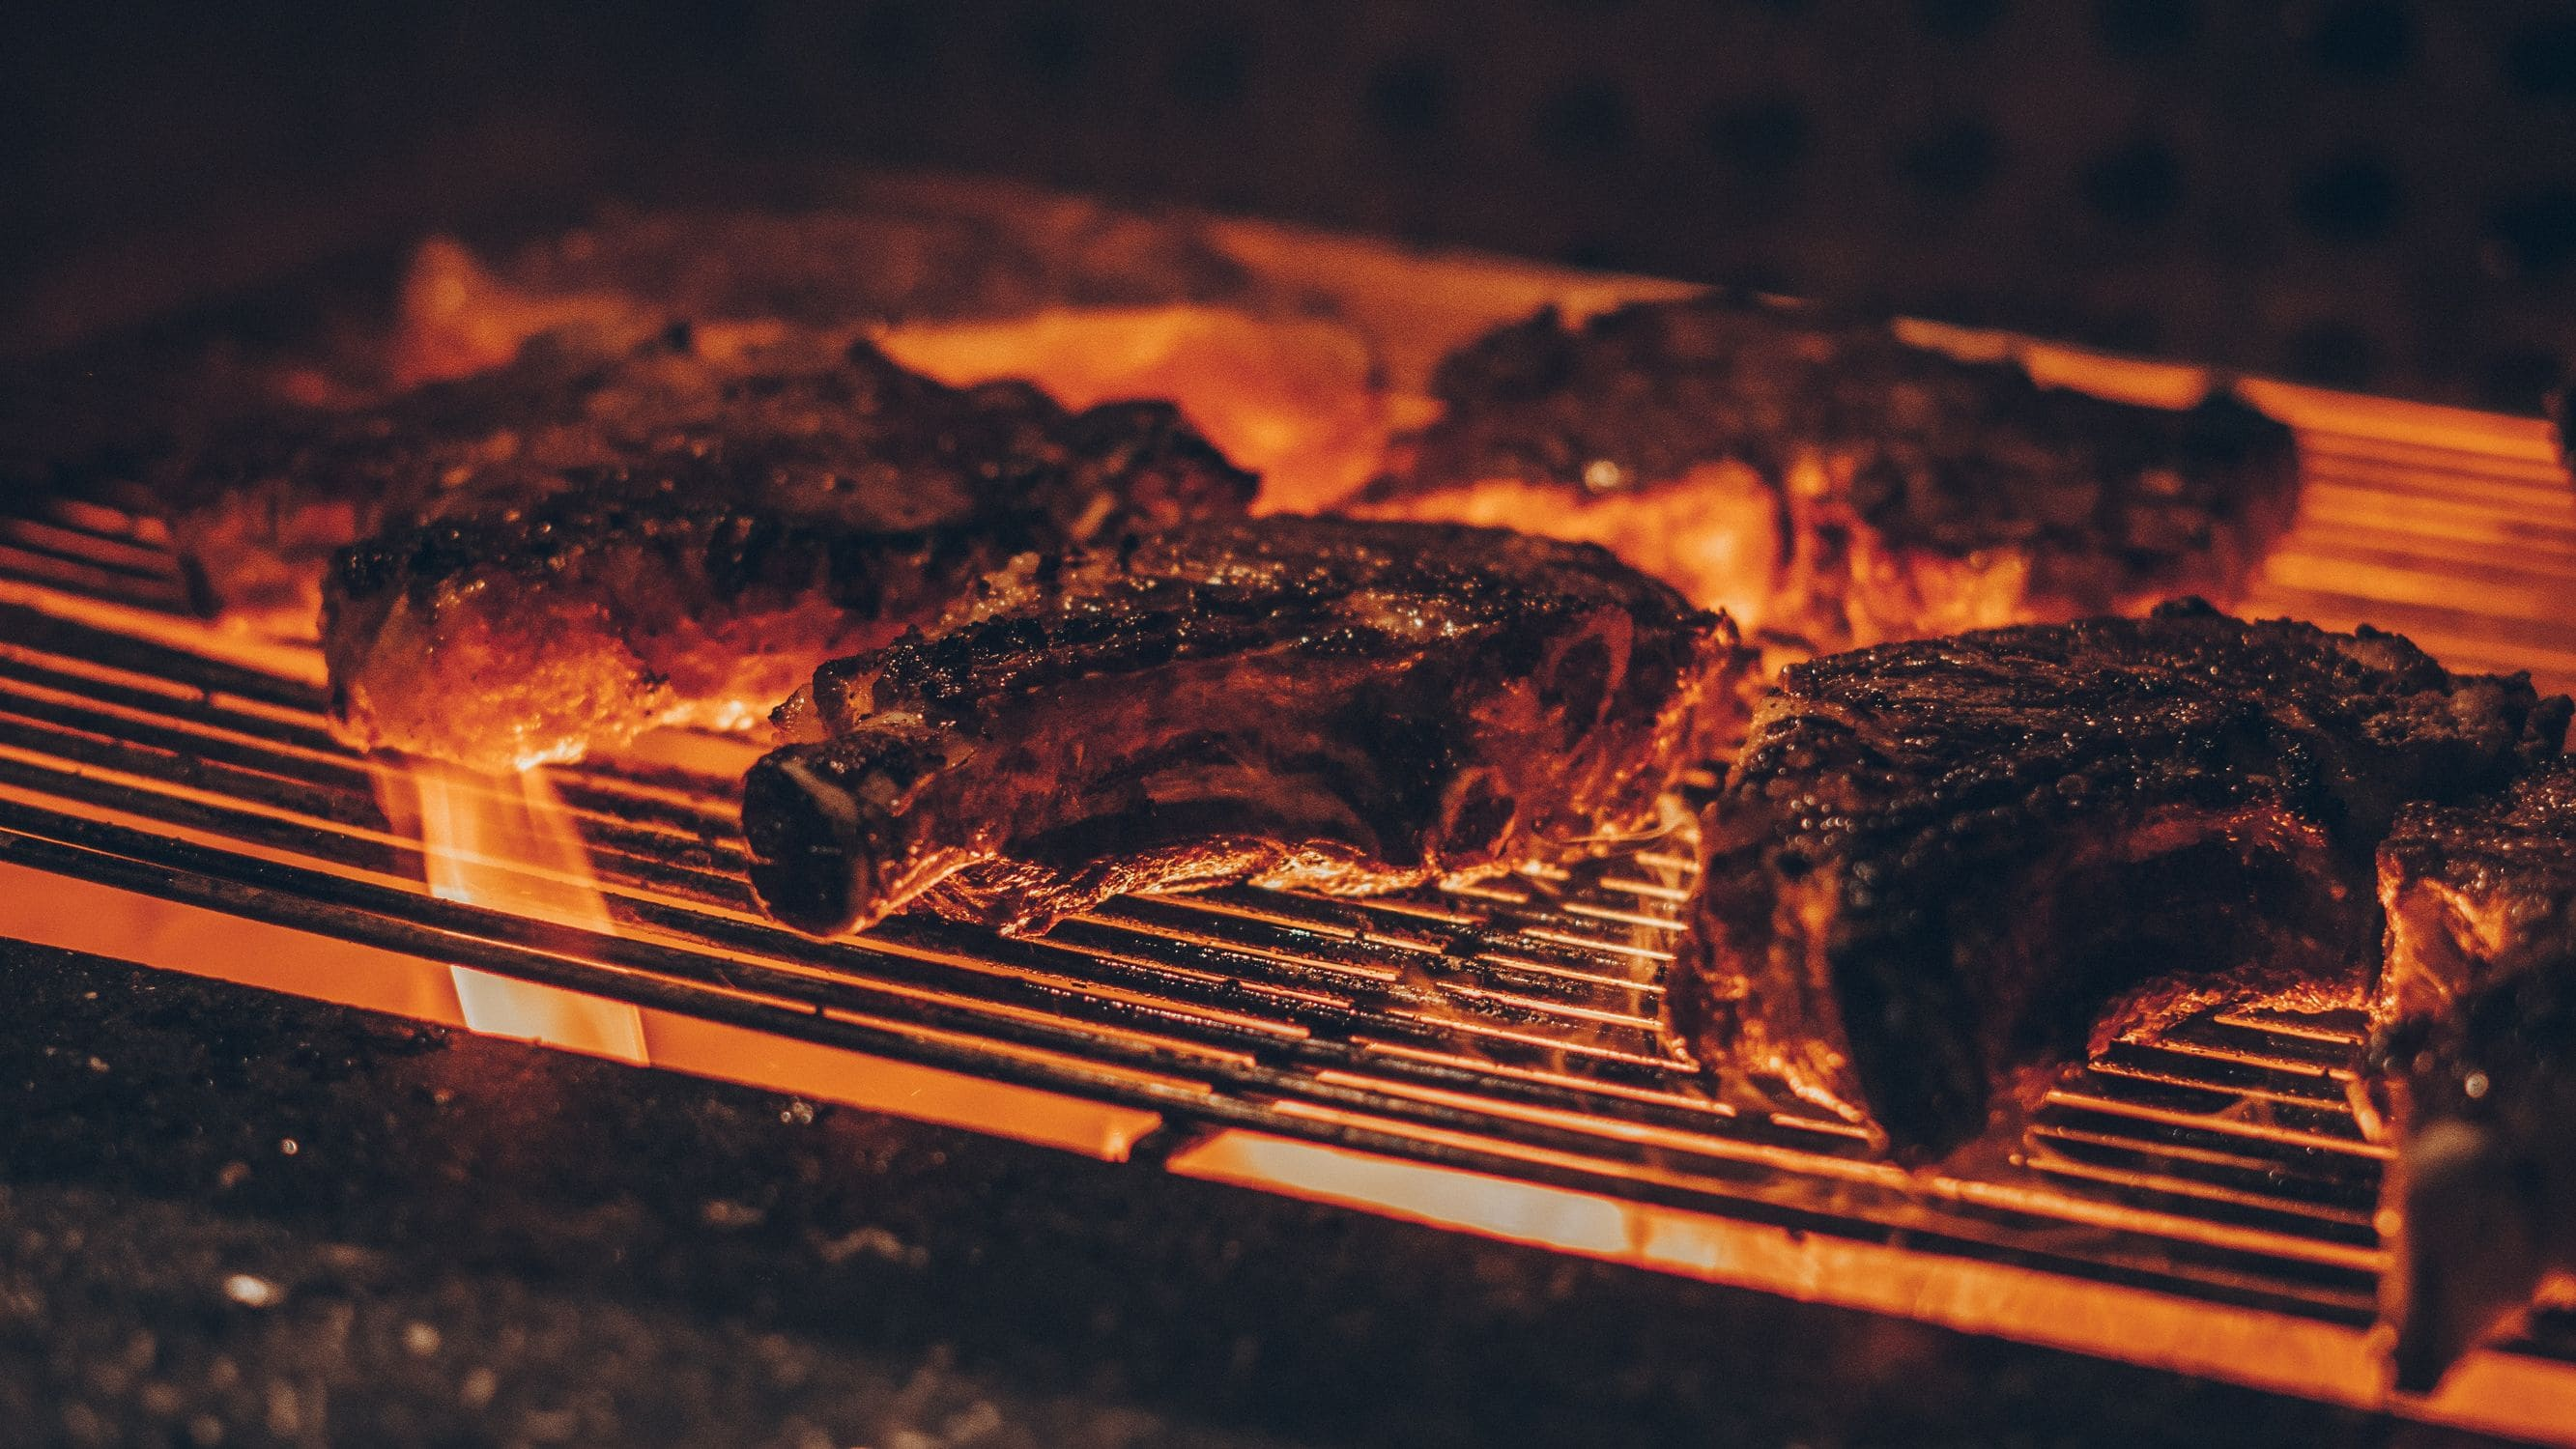 The best American barbecue joints in Singapore